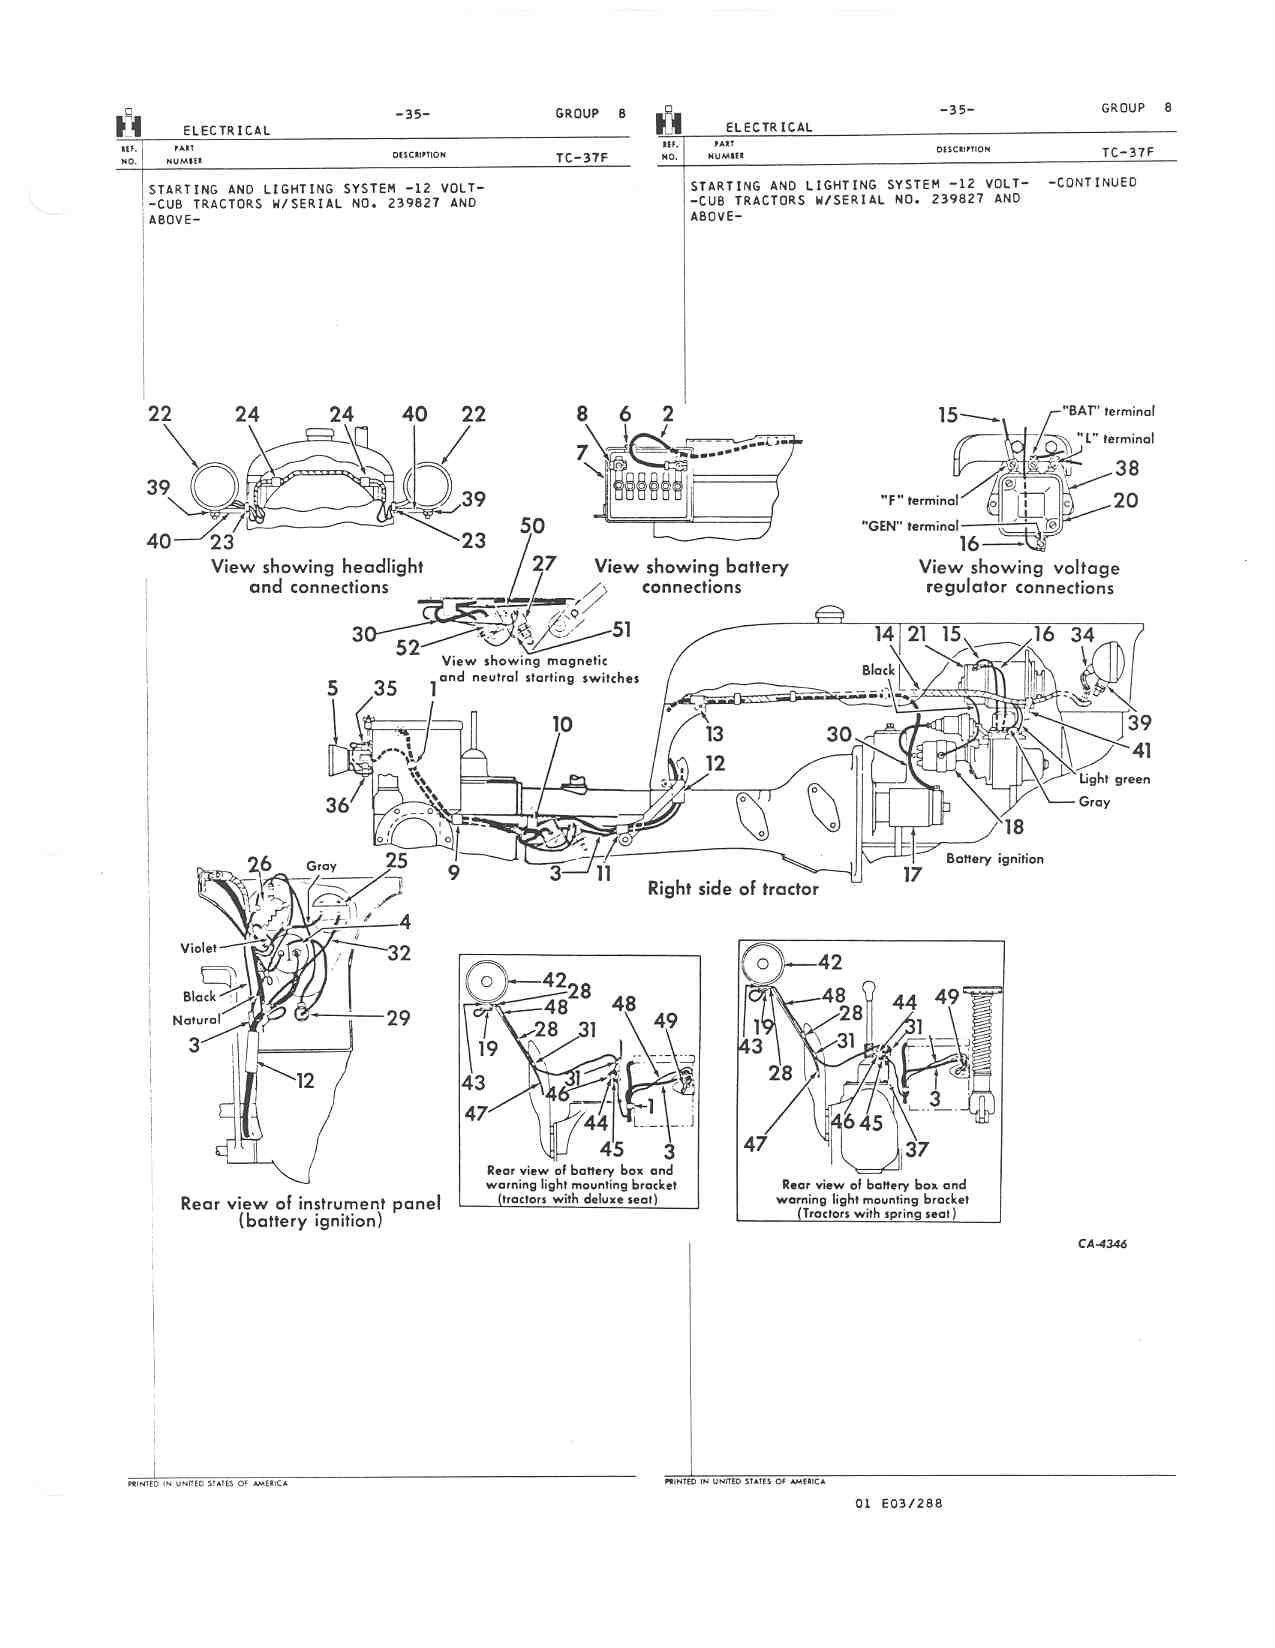 Farmall Cub 6 Volt Wiring Diagram Golden Schematic Ford 8n Further 1948 Plymouth Parts Pto Lever Does Not Engage My Trusted